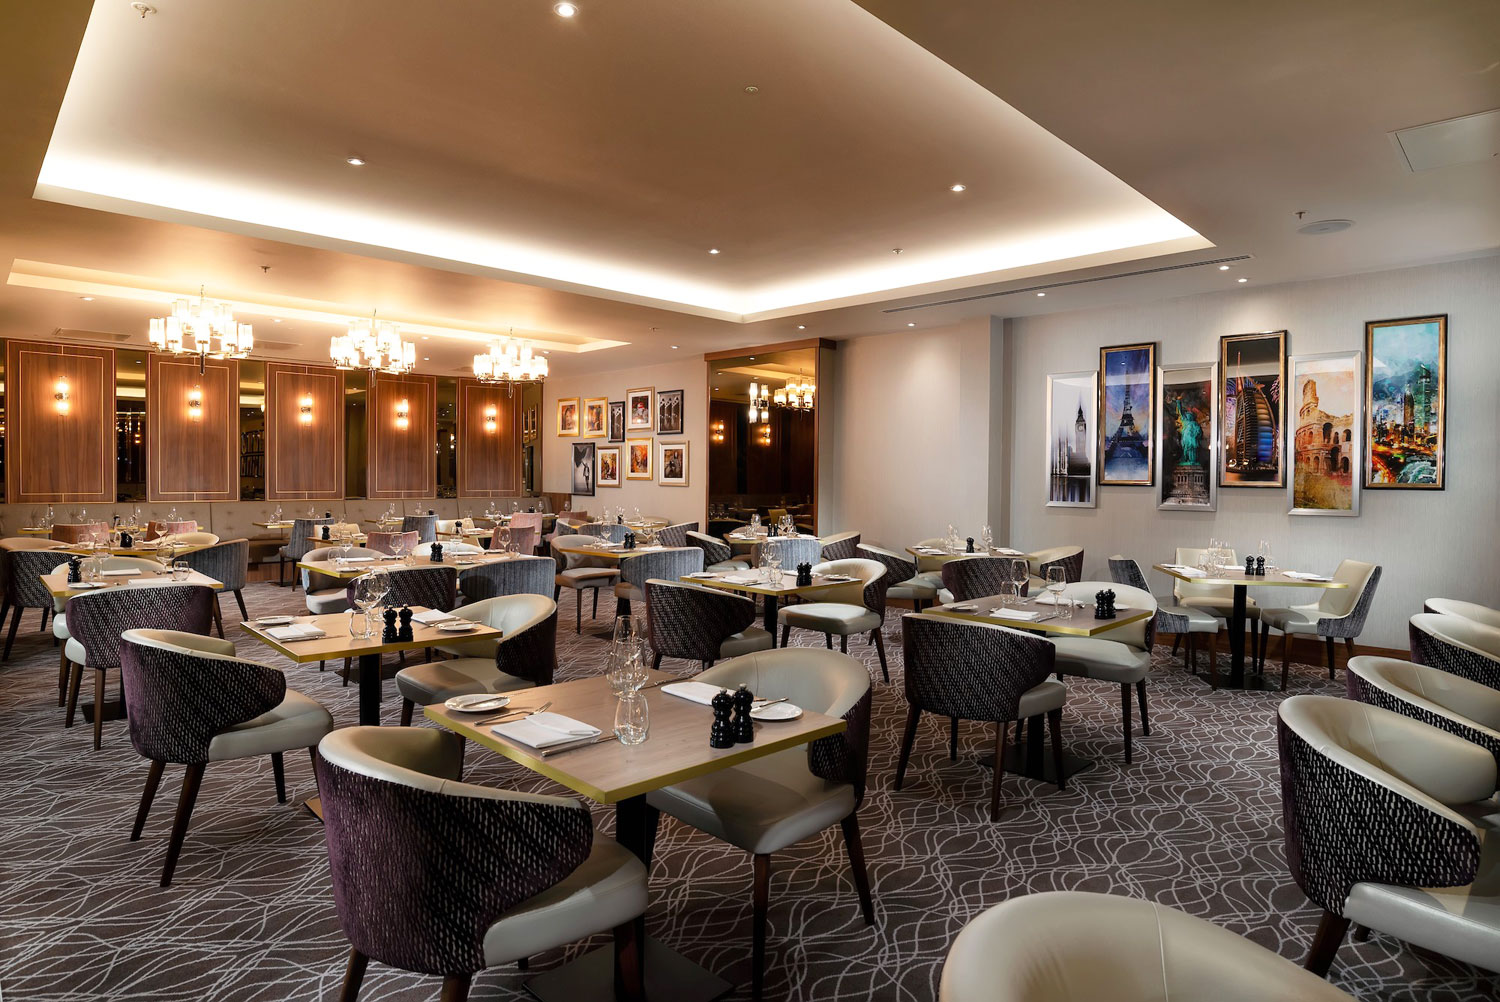 Urban Brasserie restaurant at Crowne Plaza, Heathrow T4